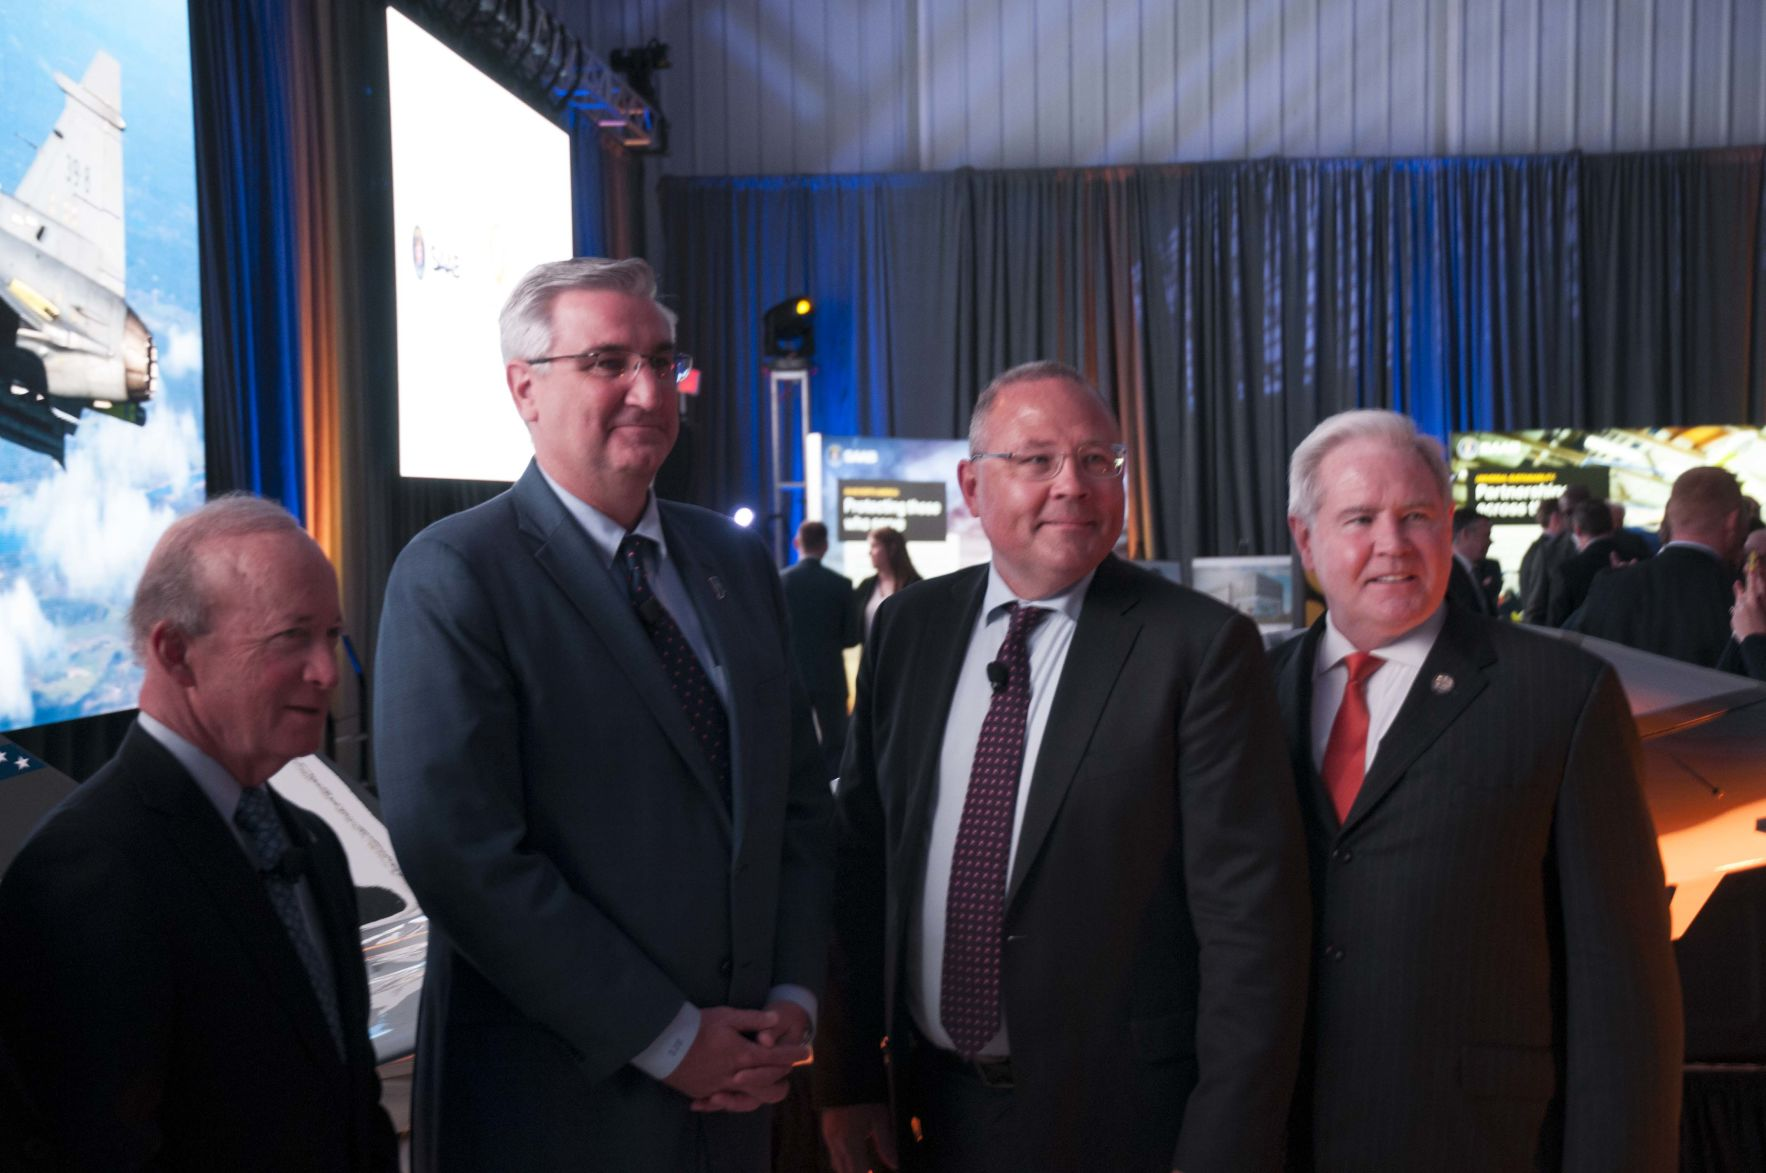 5/8/19 Saab Announcement, Daniels, Holcomb and Buskhe